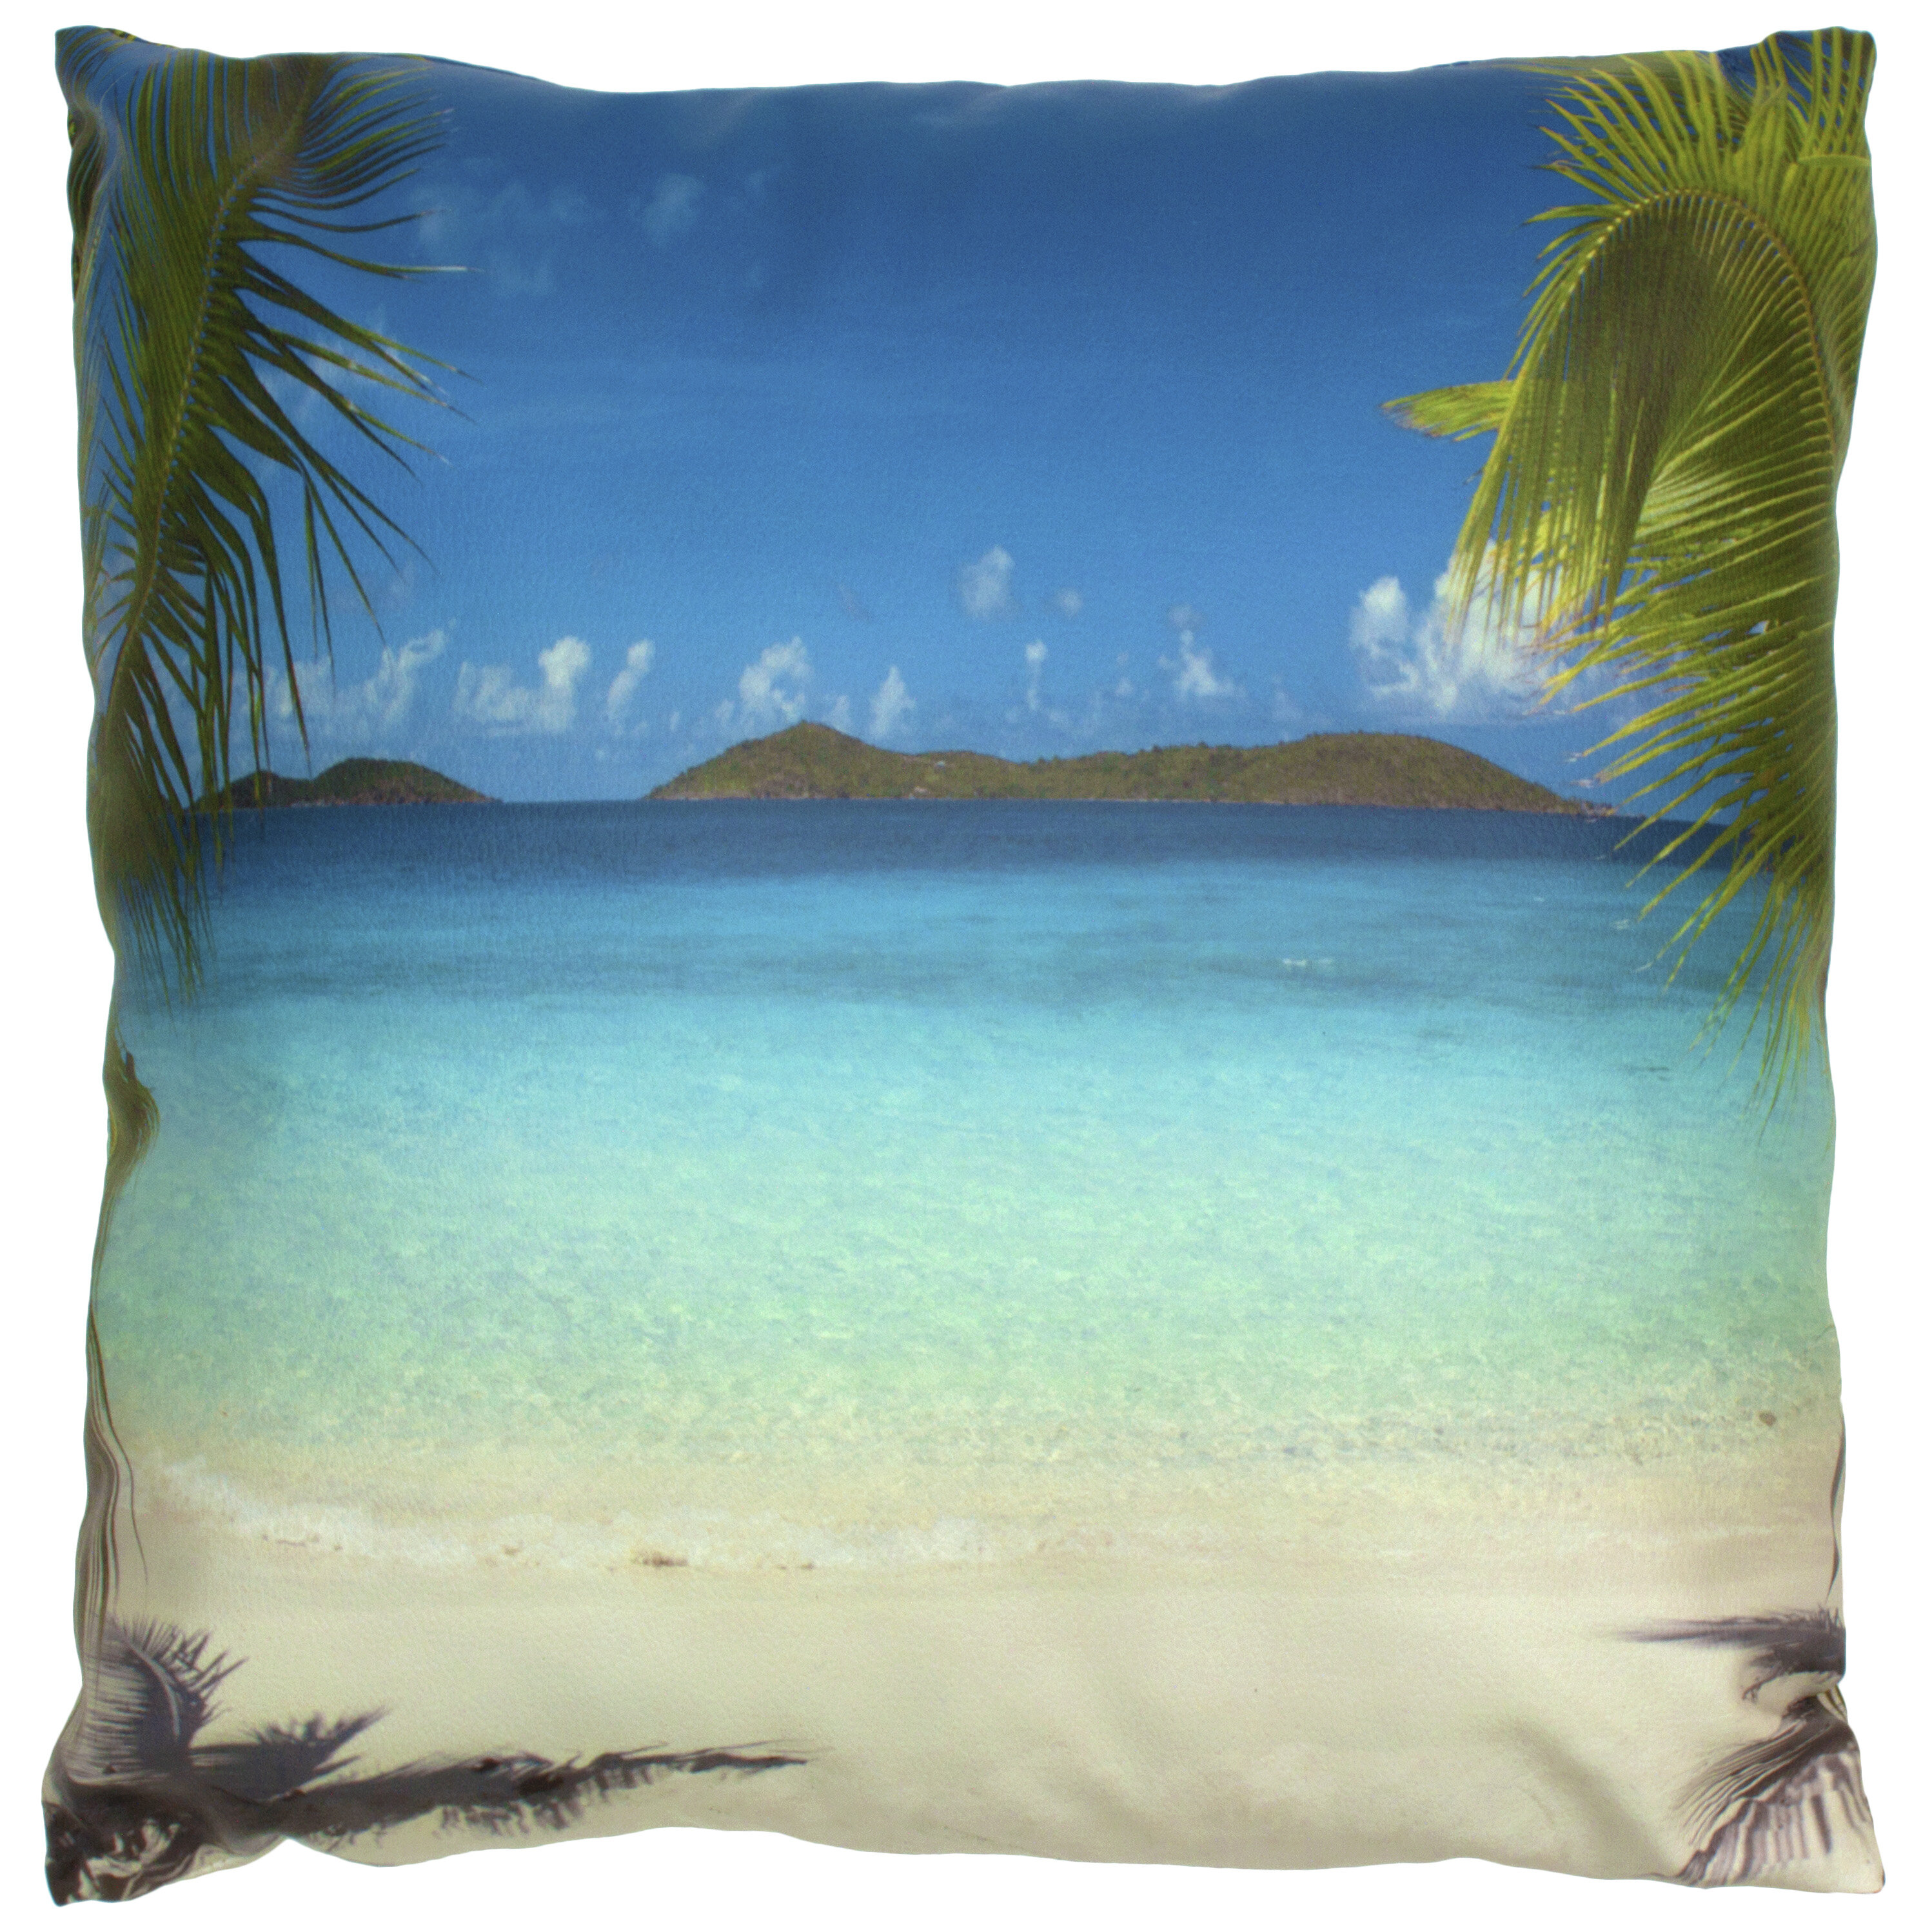 Bay Isle Home Kaplan Caribbean Beach Faux Leather Throw Pillow Wayfair